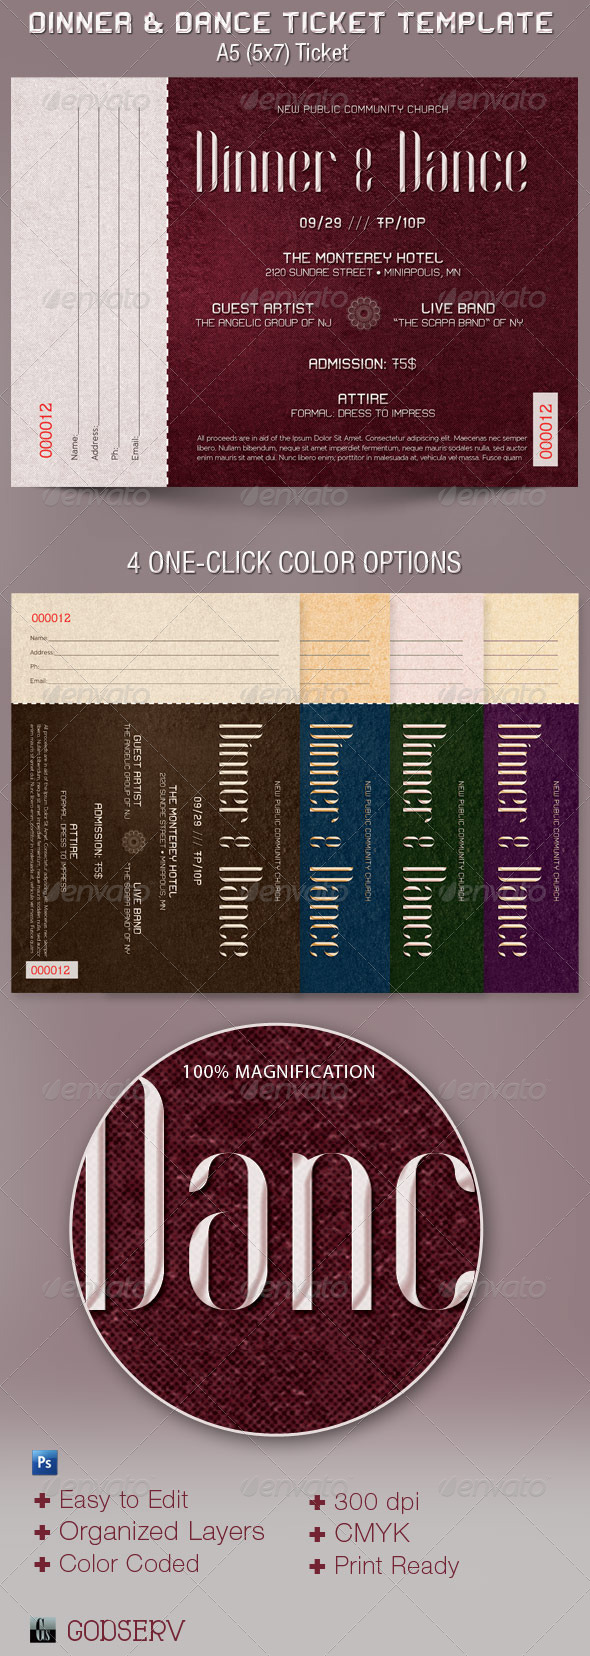 Dinner and Dance Ticket Template - Miscellaneous Print Templates